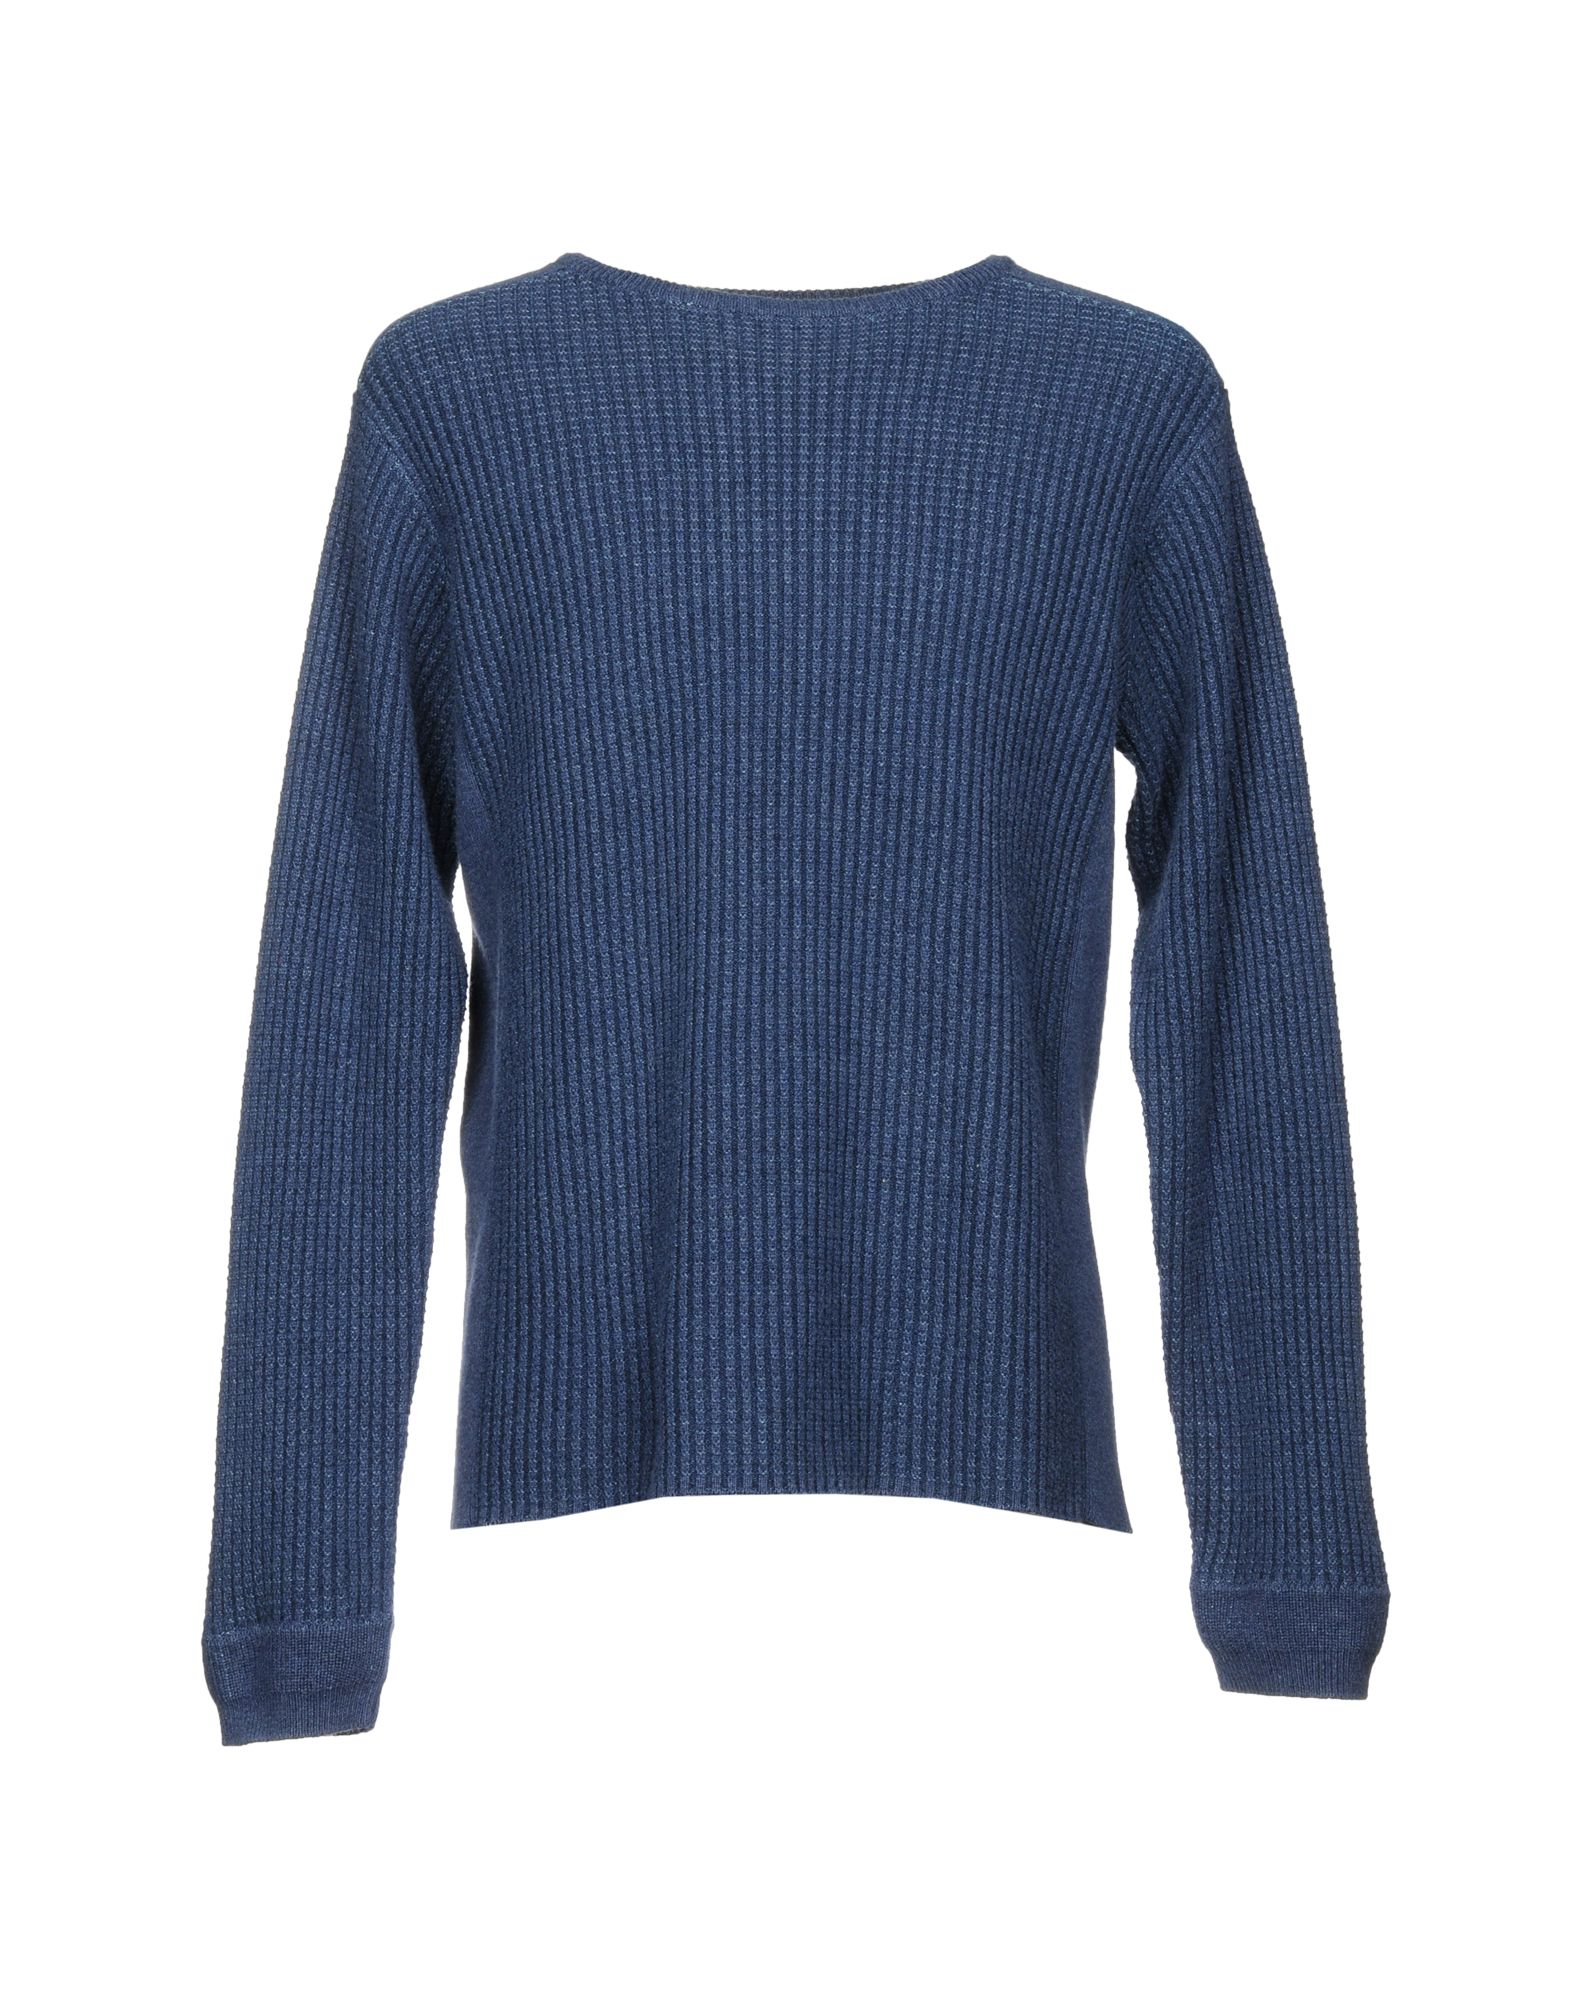 SOLD OUT         Pullover Ron Herman Uomo - Acquista online su